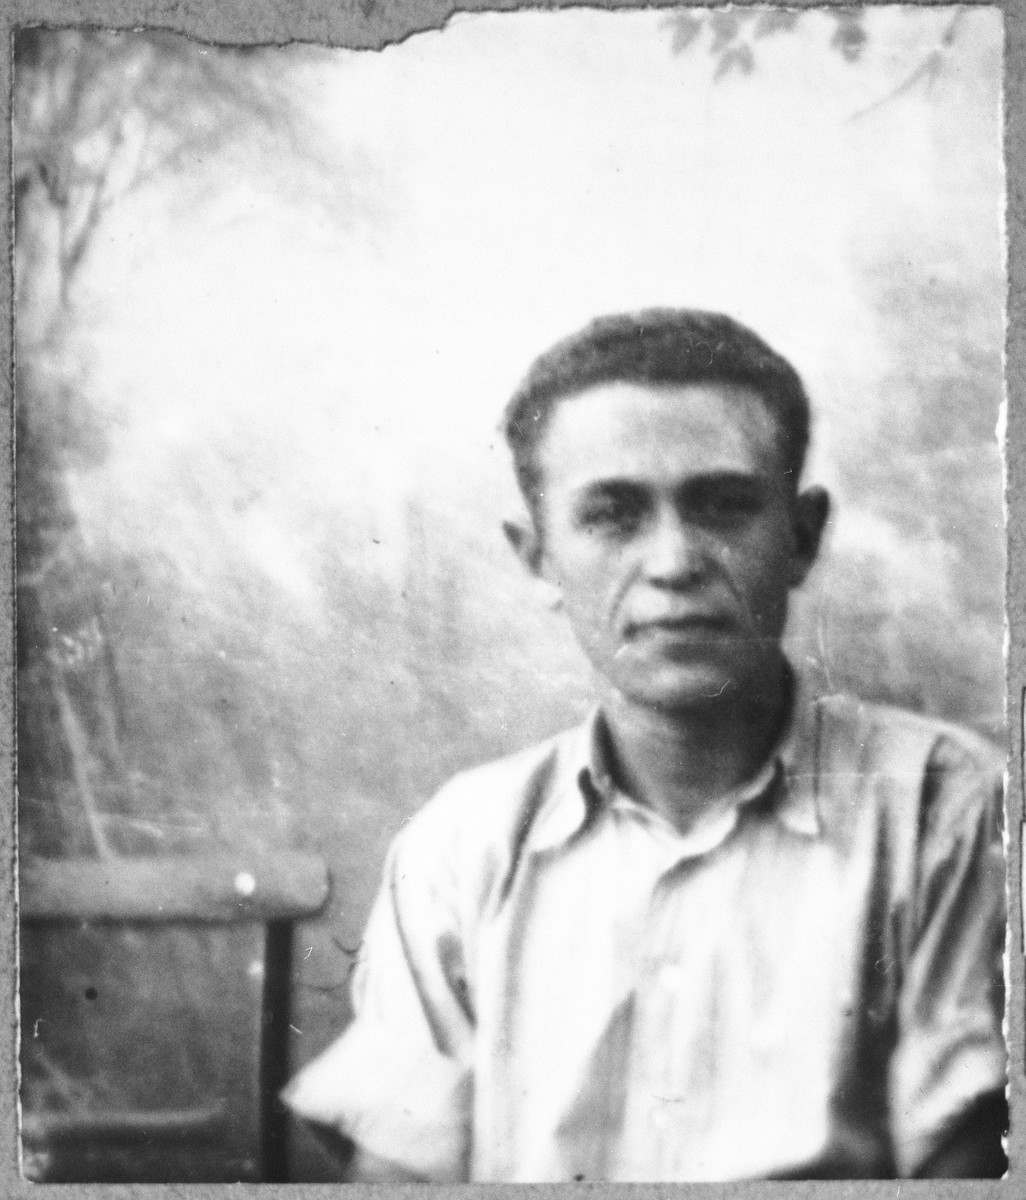 Portrait of Schua Kamchi, son of Todoros Kamchi.  He was a student.  he lived at Zmayeva 17 in Bitola.